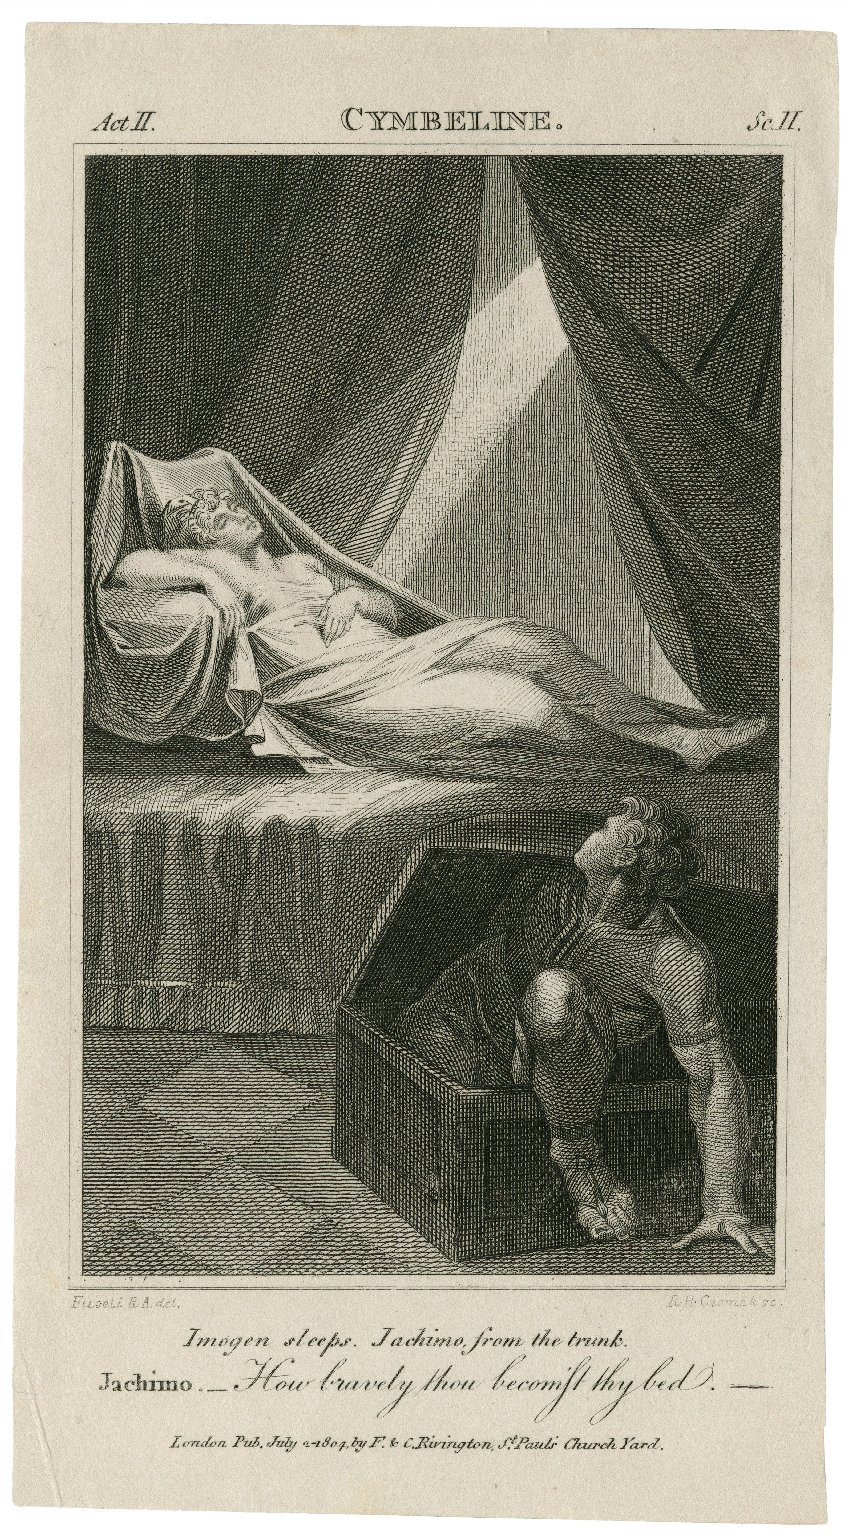 Cymbeline, act II, sc. II ... Jachimo -- How bravely thou becoms't thy bed [graphic] / [Henry] Fuseli R.A., del. ; R.H. Cromek, sc.